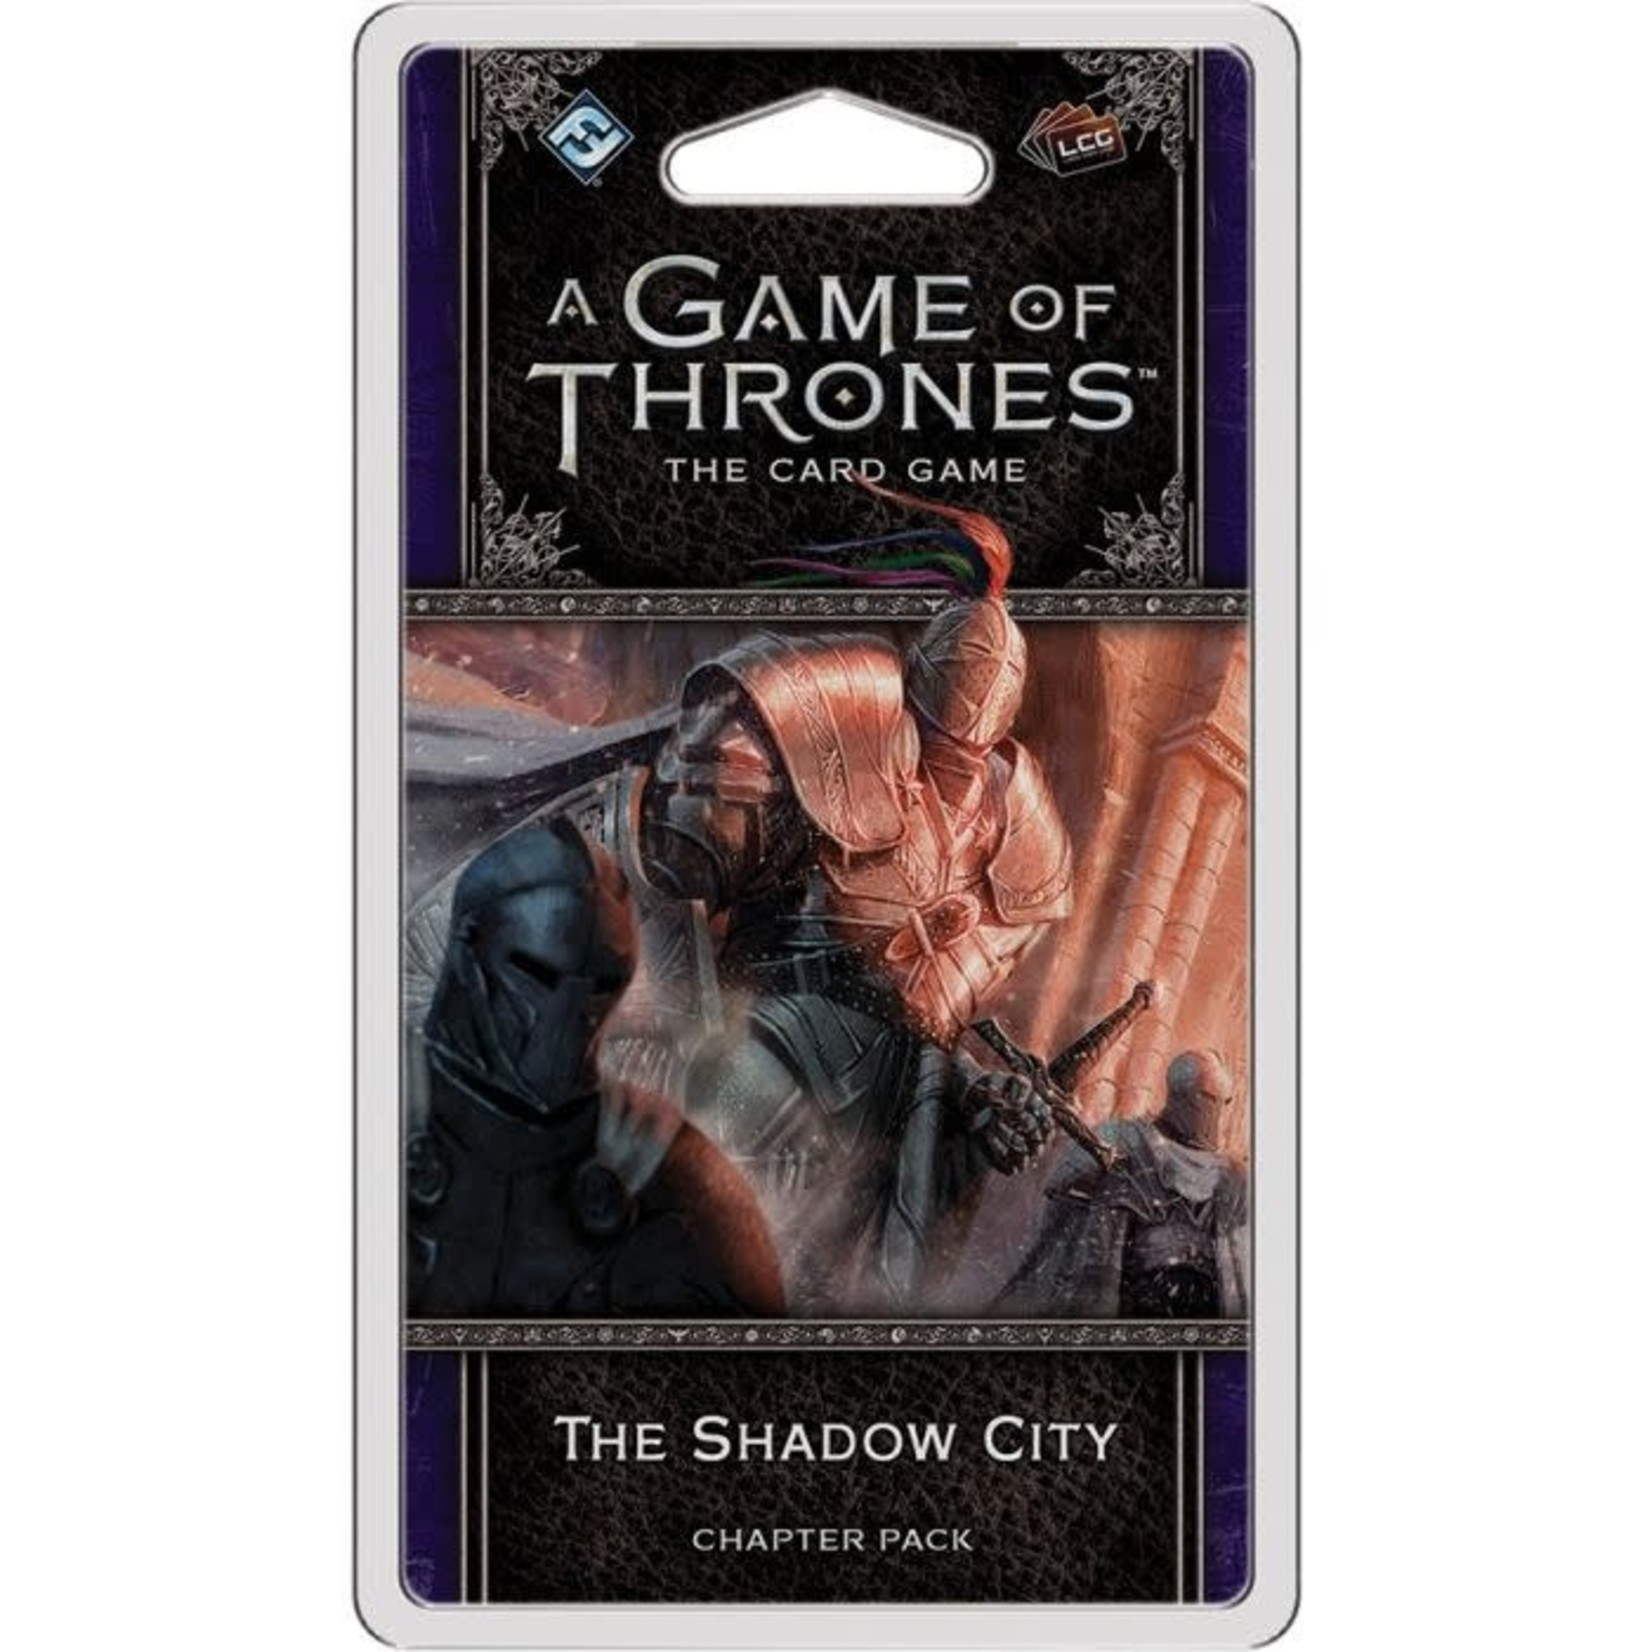 Game of Thrones LCG The Shadow City